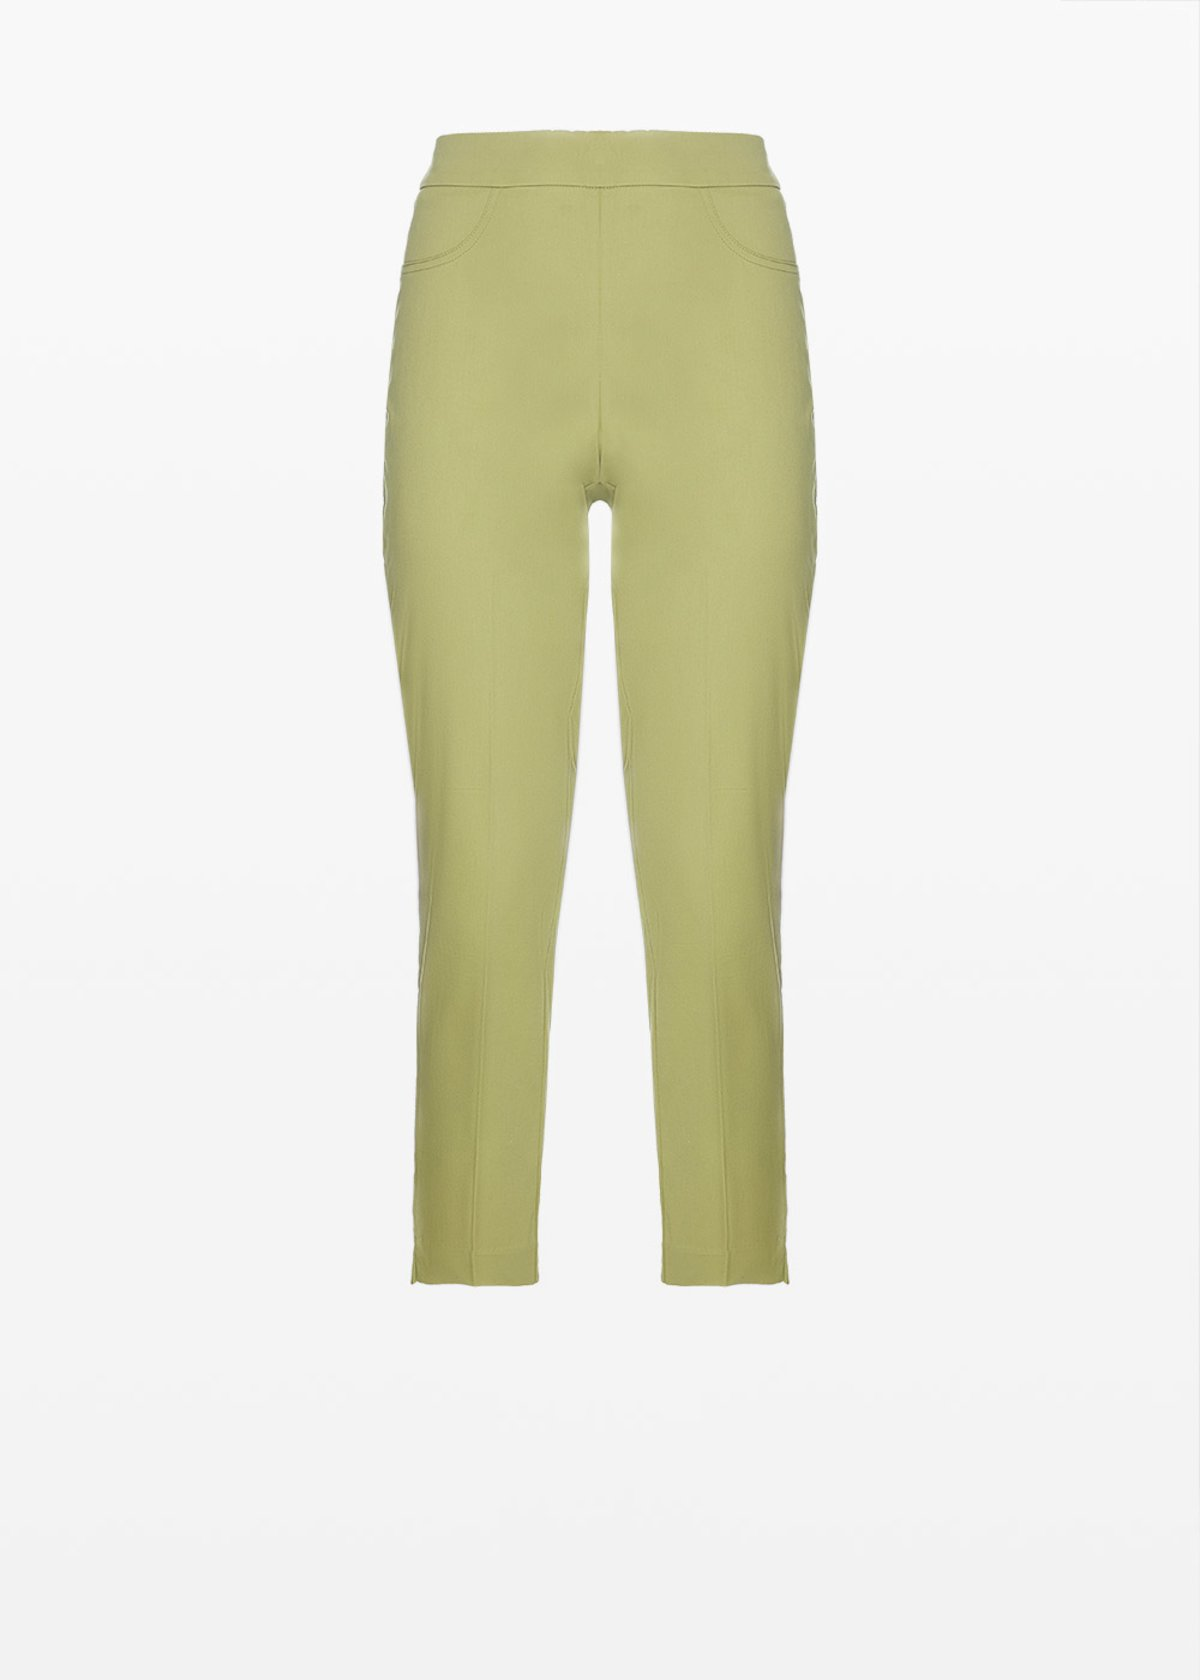 Capri Pants 'Piero6' Scarlett design in cotton sateen - Alga - Woman